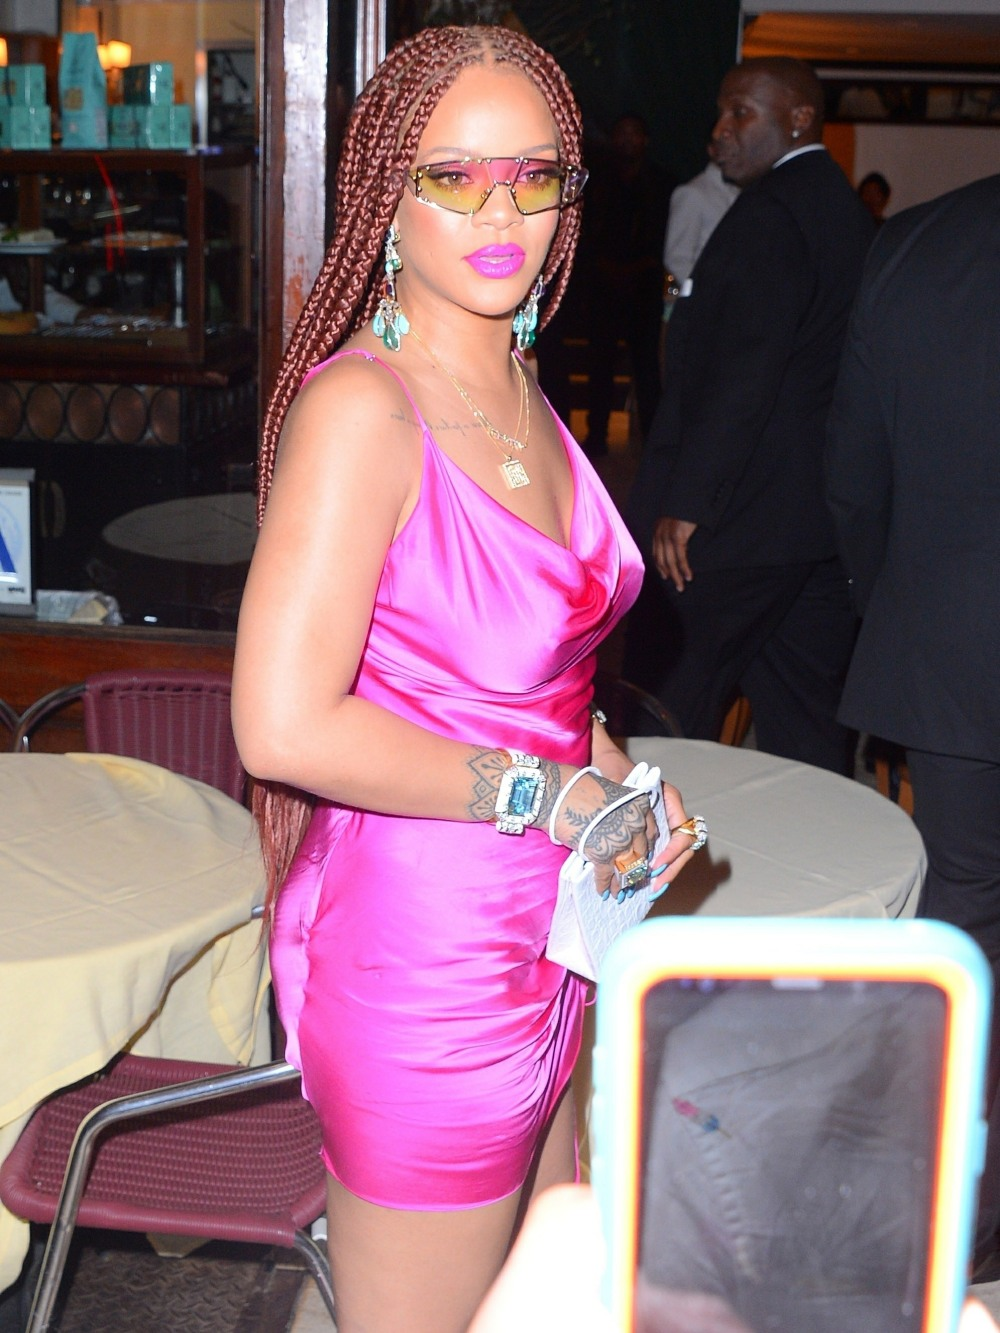 Rihanna Shows Off Her Fabulous Curves In Pink Mini Dress & Rocks Box Braids At Fenty Pop-Up Party